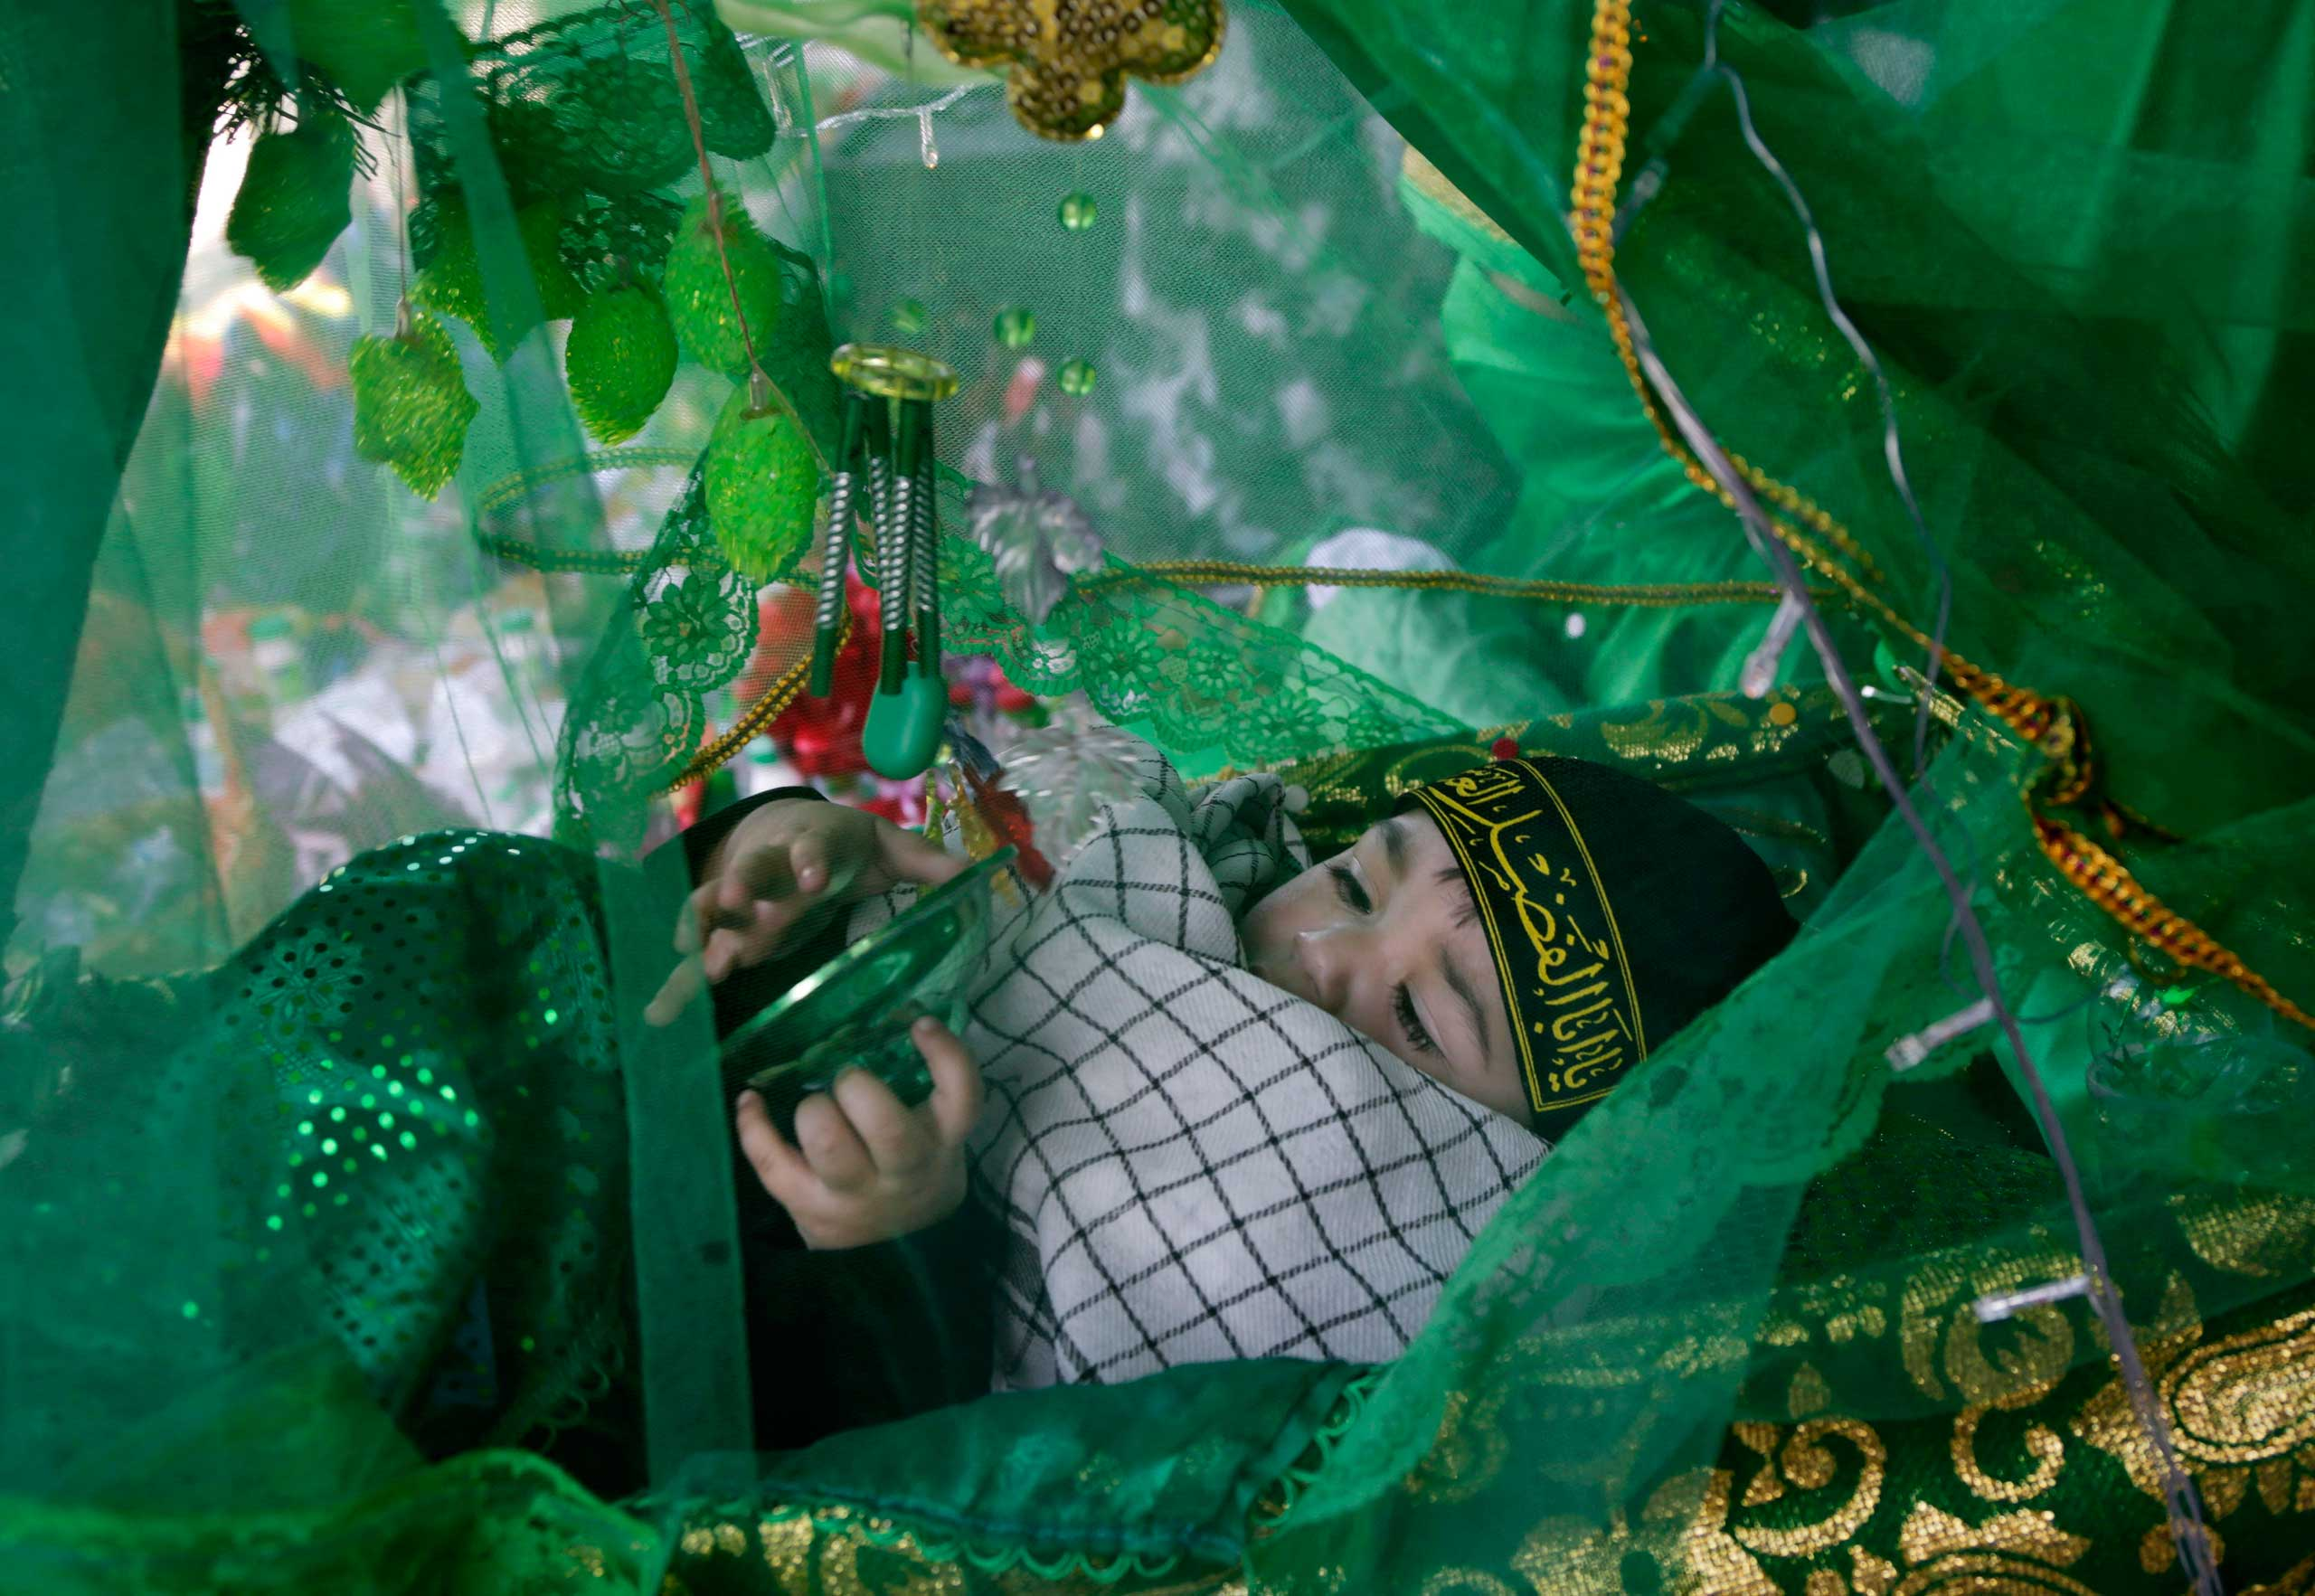 Nov. 3, 2014. A Bahraini baby, laid for a blessing in a bassinet that is part of a living diorama, plays with ornaments, ahead of the Ashoura holiday during the month of Muharram, in Malkiya, Bahrain.